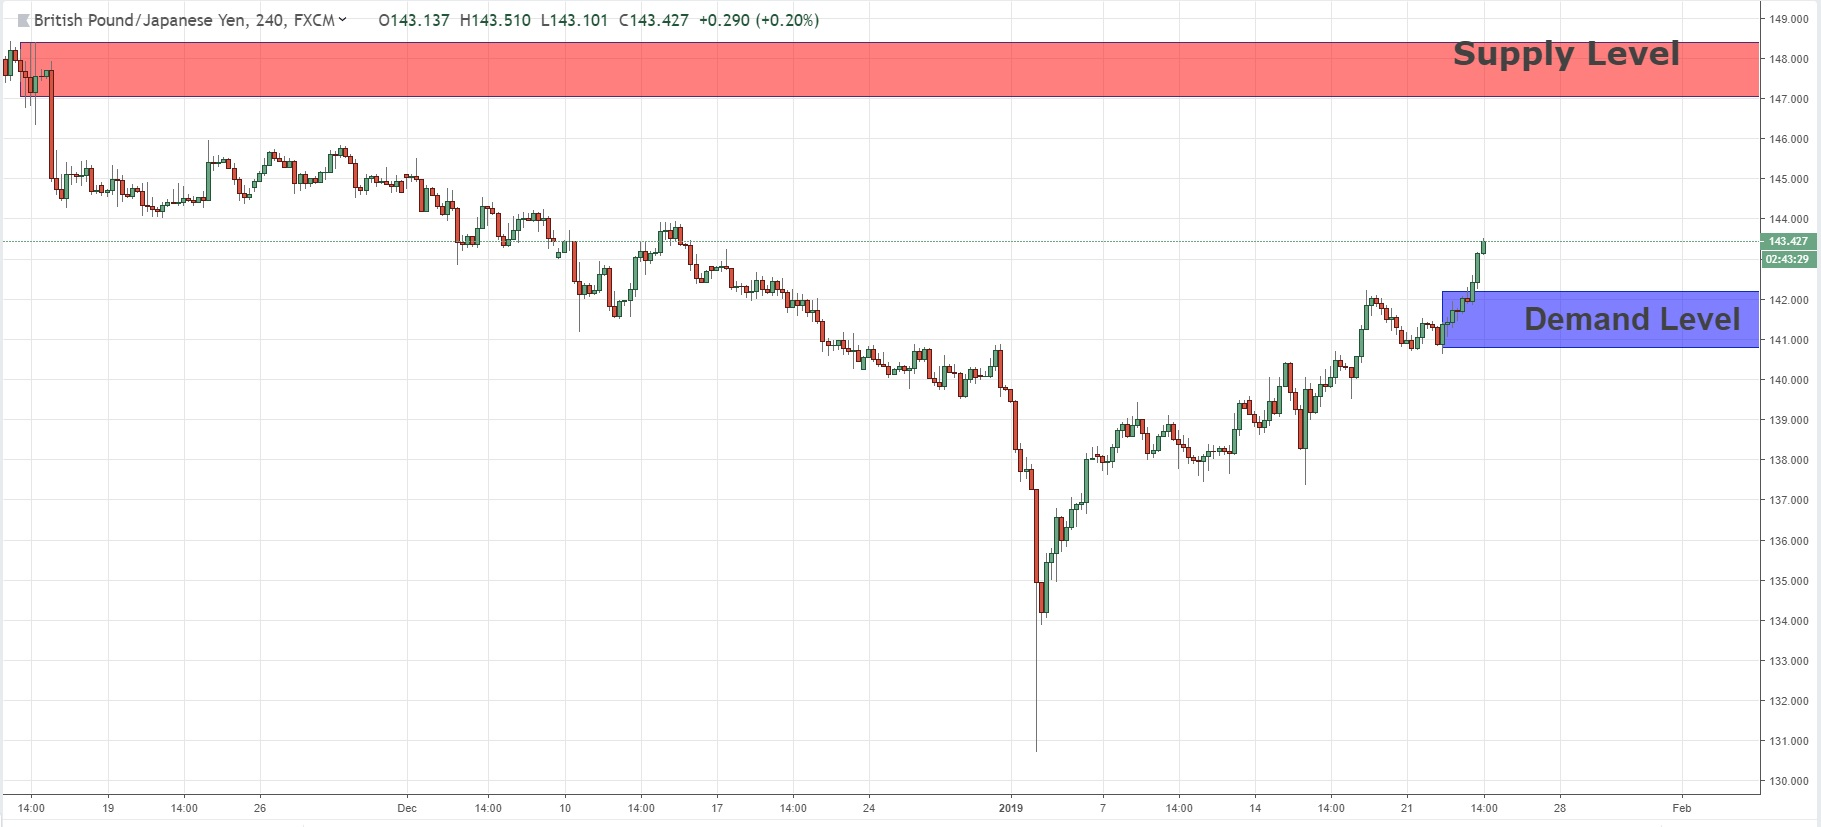 Swing Key Levels For GBPJPY  23/01/2019